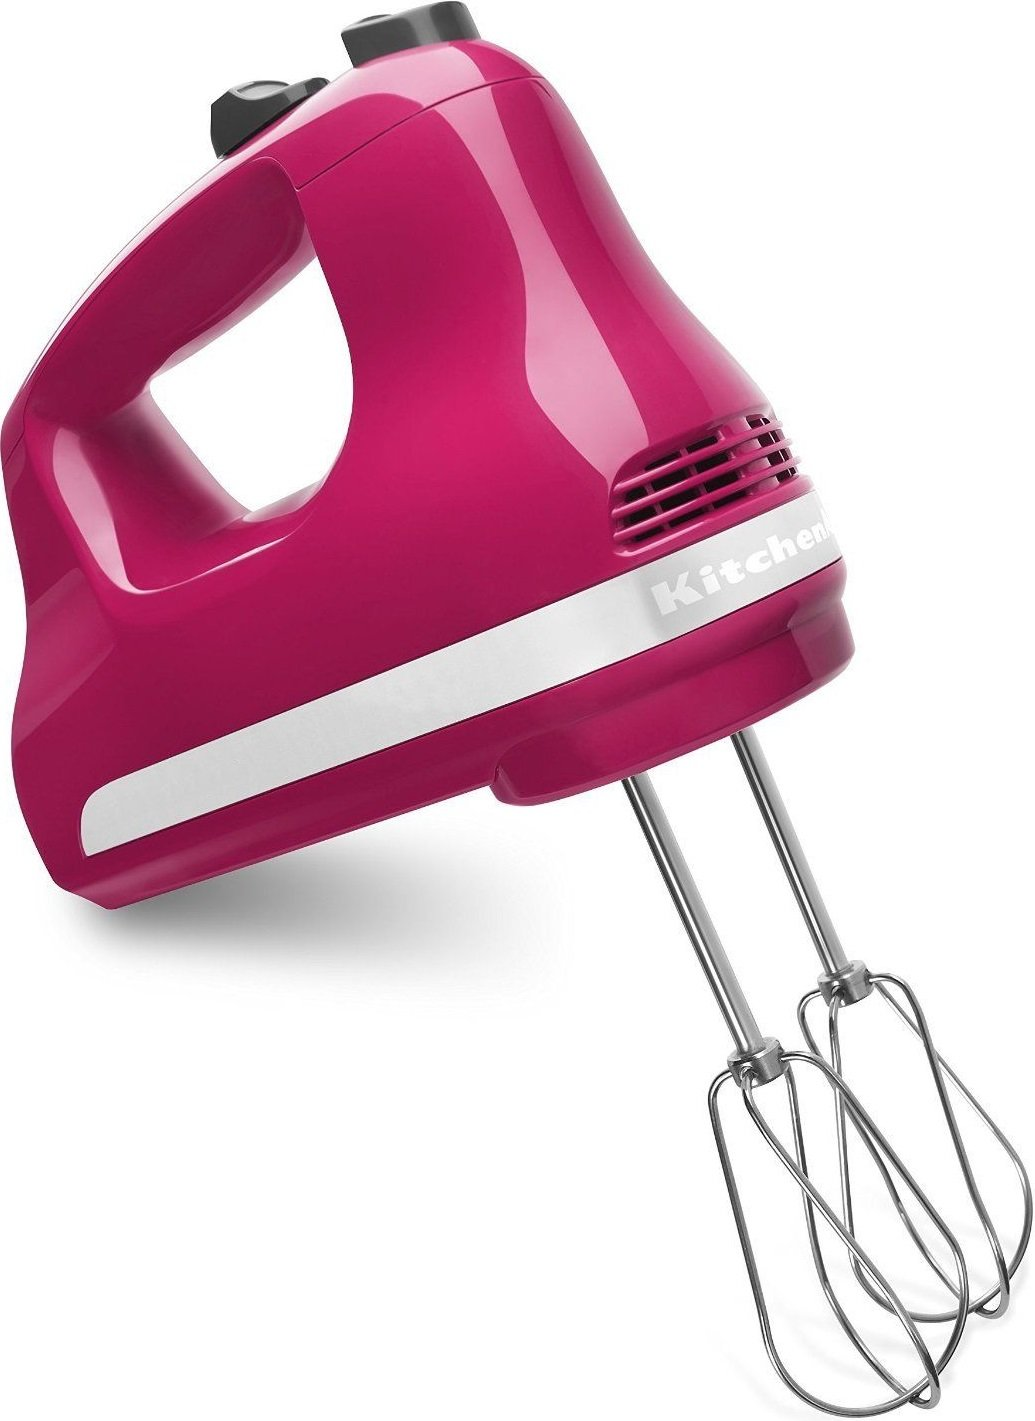 KitchenAid KHM920cb 9-Speed Most Powerful Digital Display Power Hand Mixer Cranberry